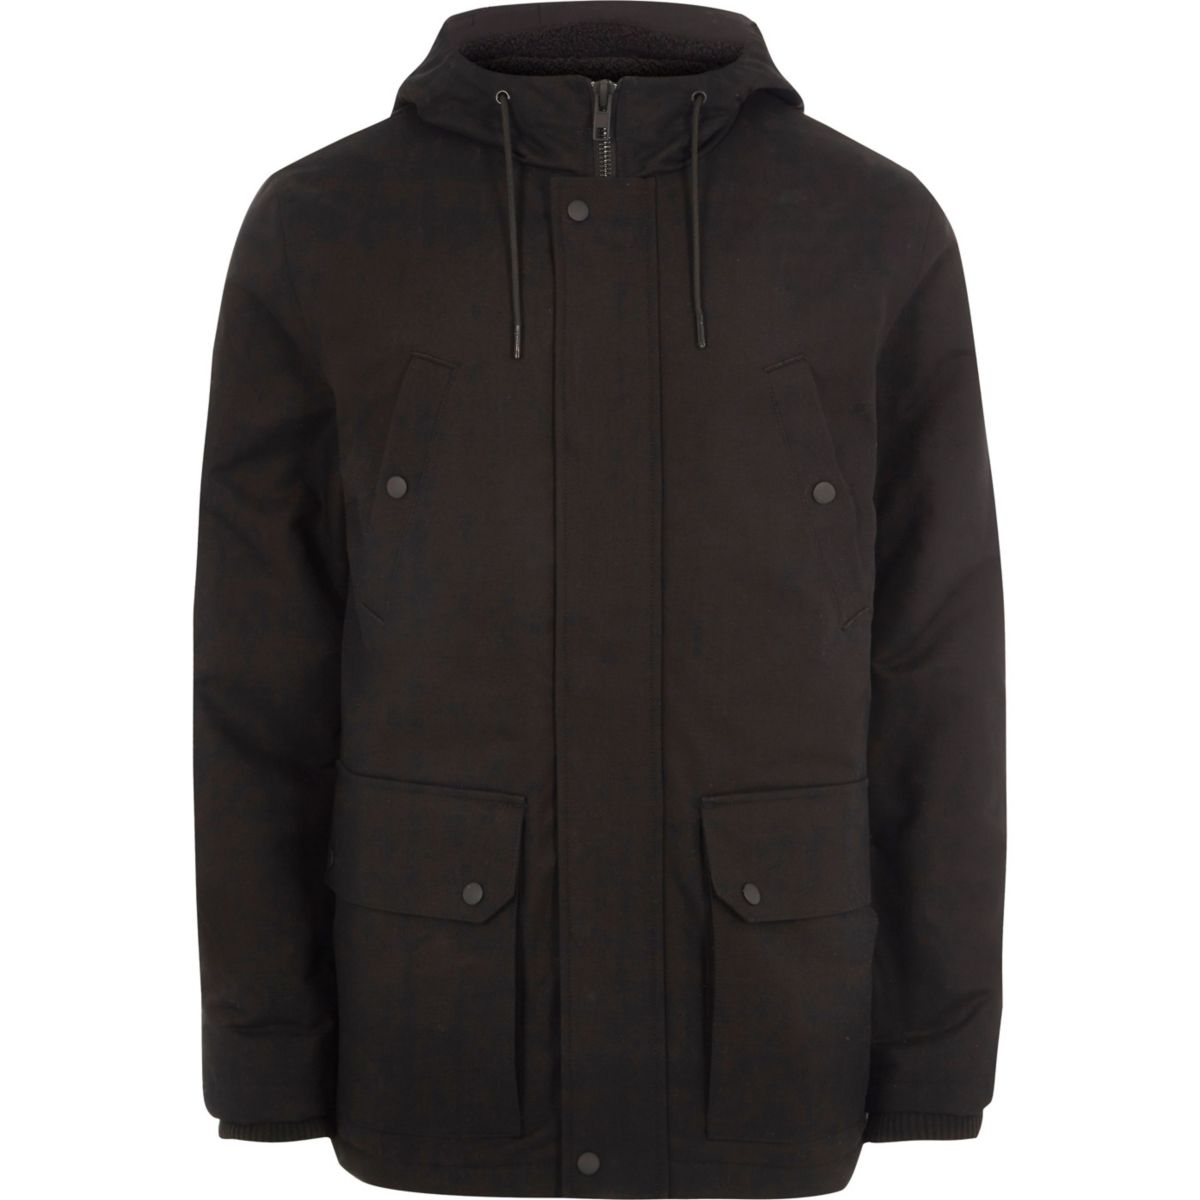 Big and Tall black hooded fleece lined jacket